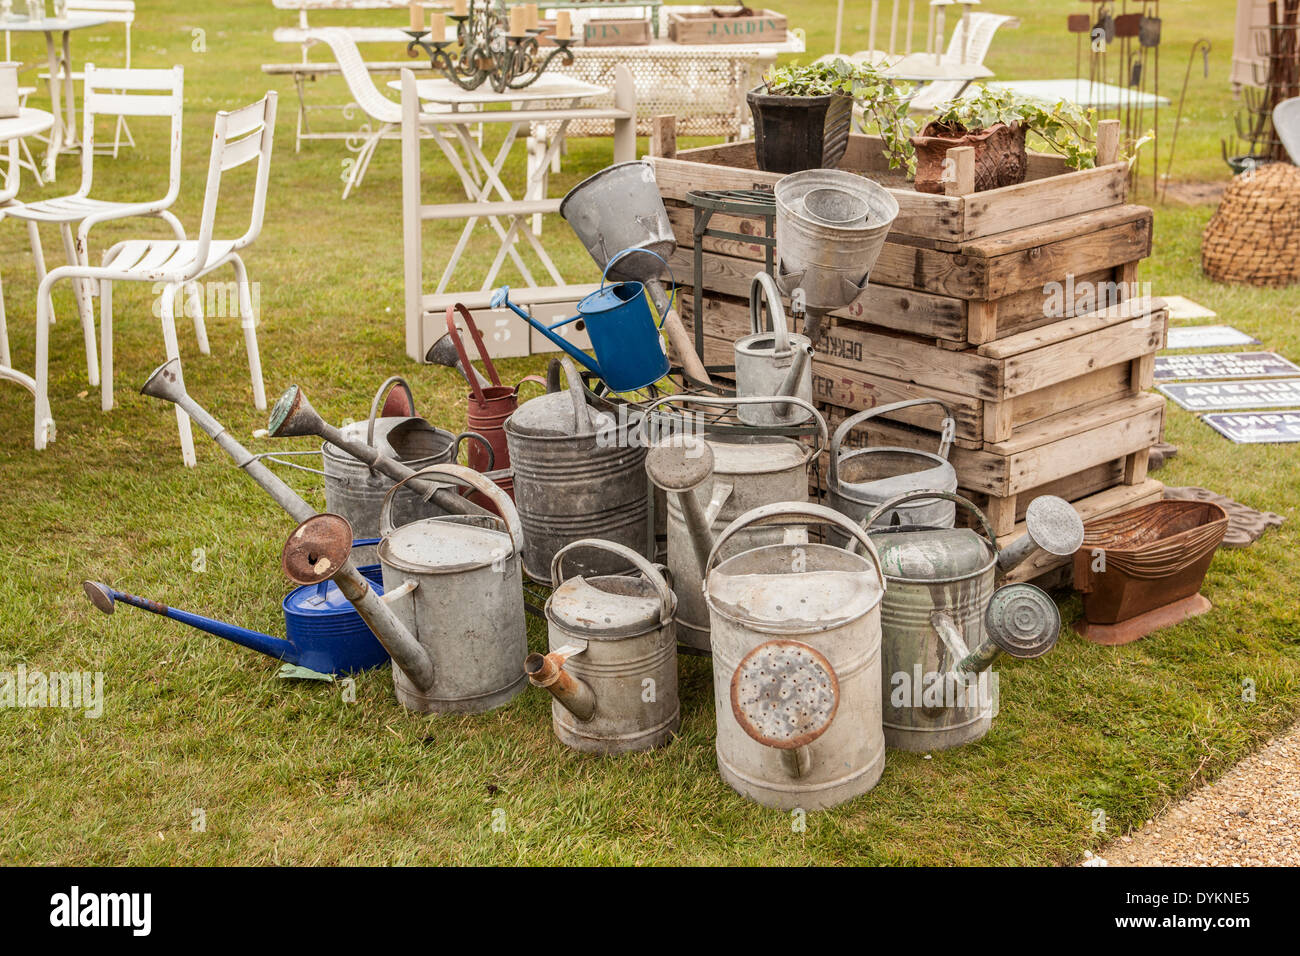 Watering cans - Stock Image